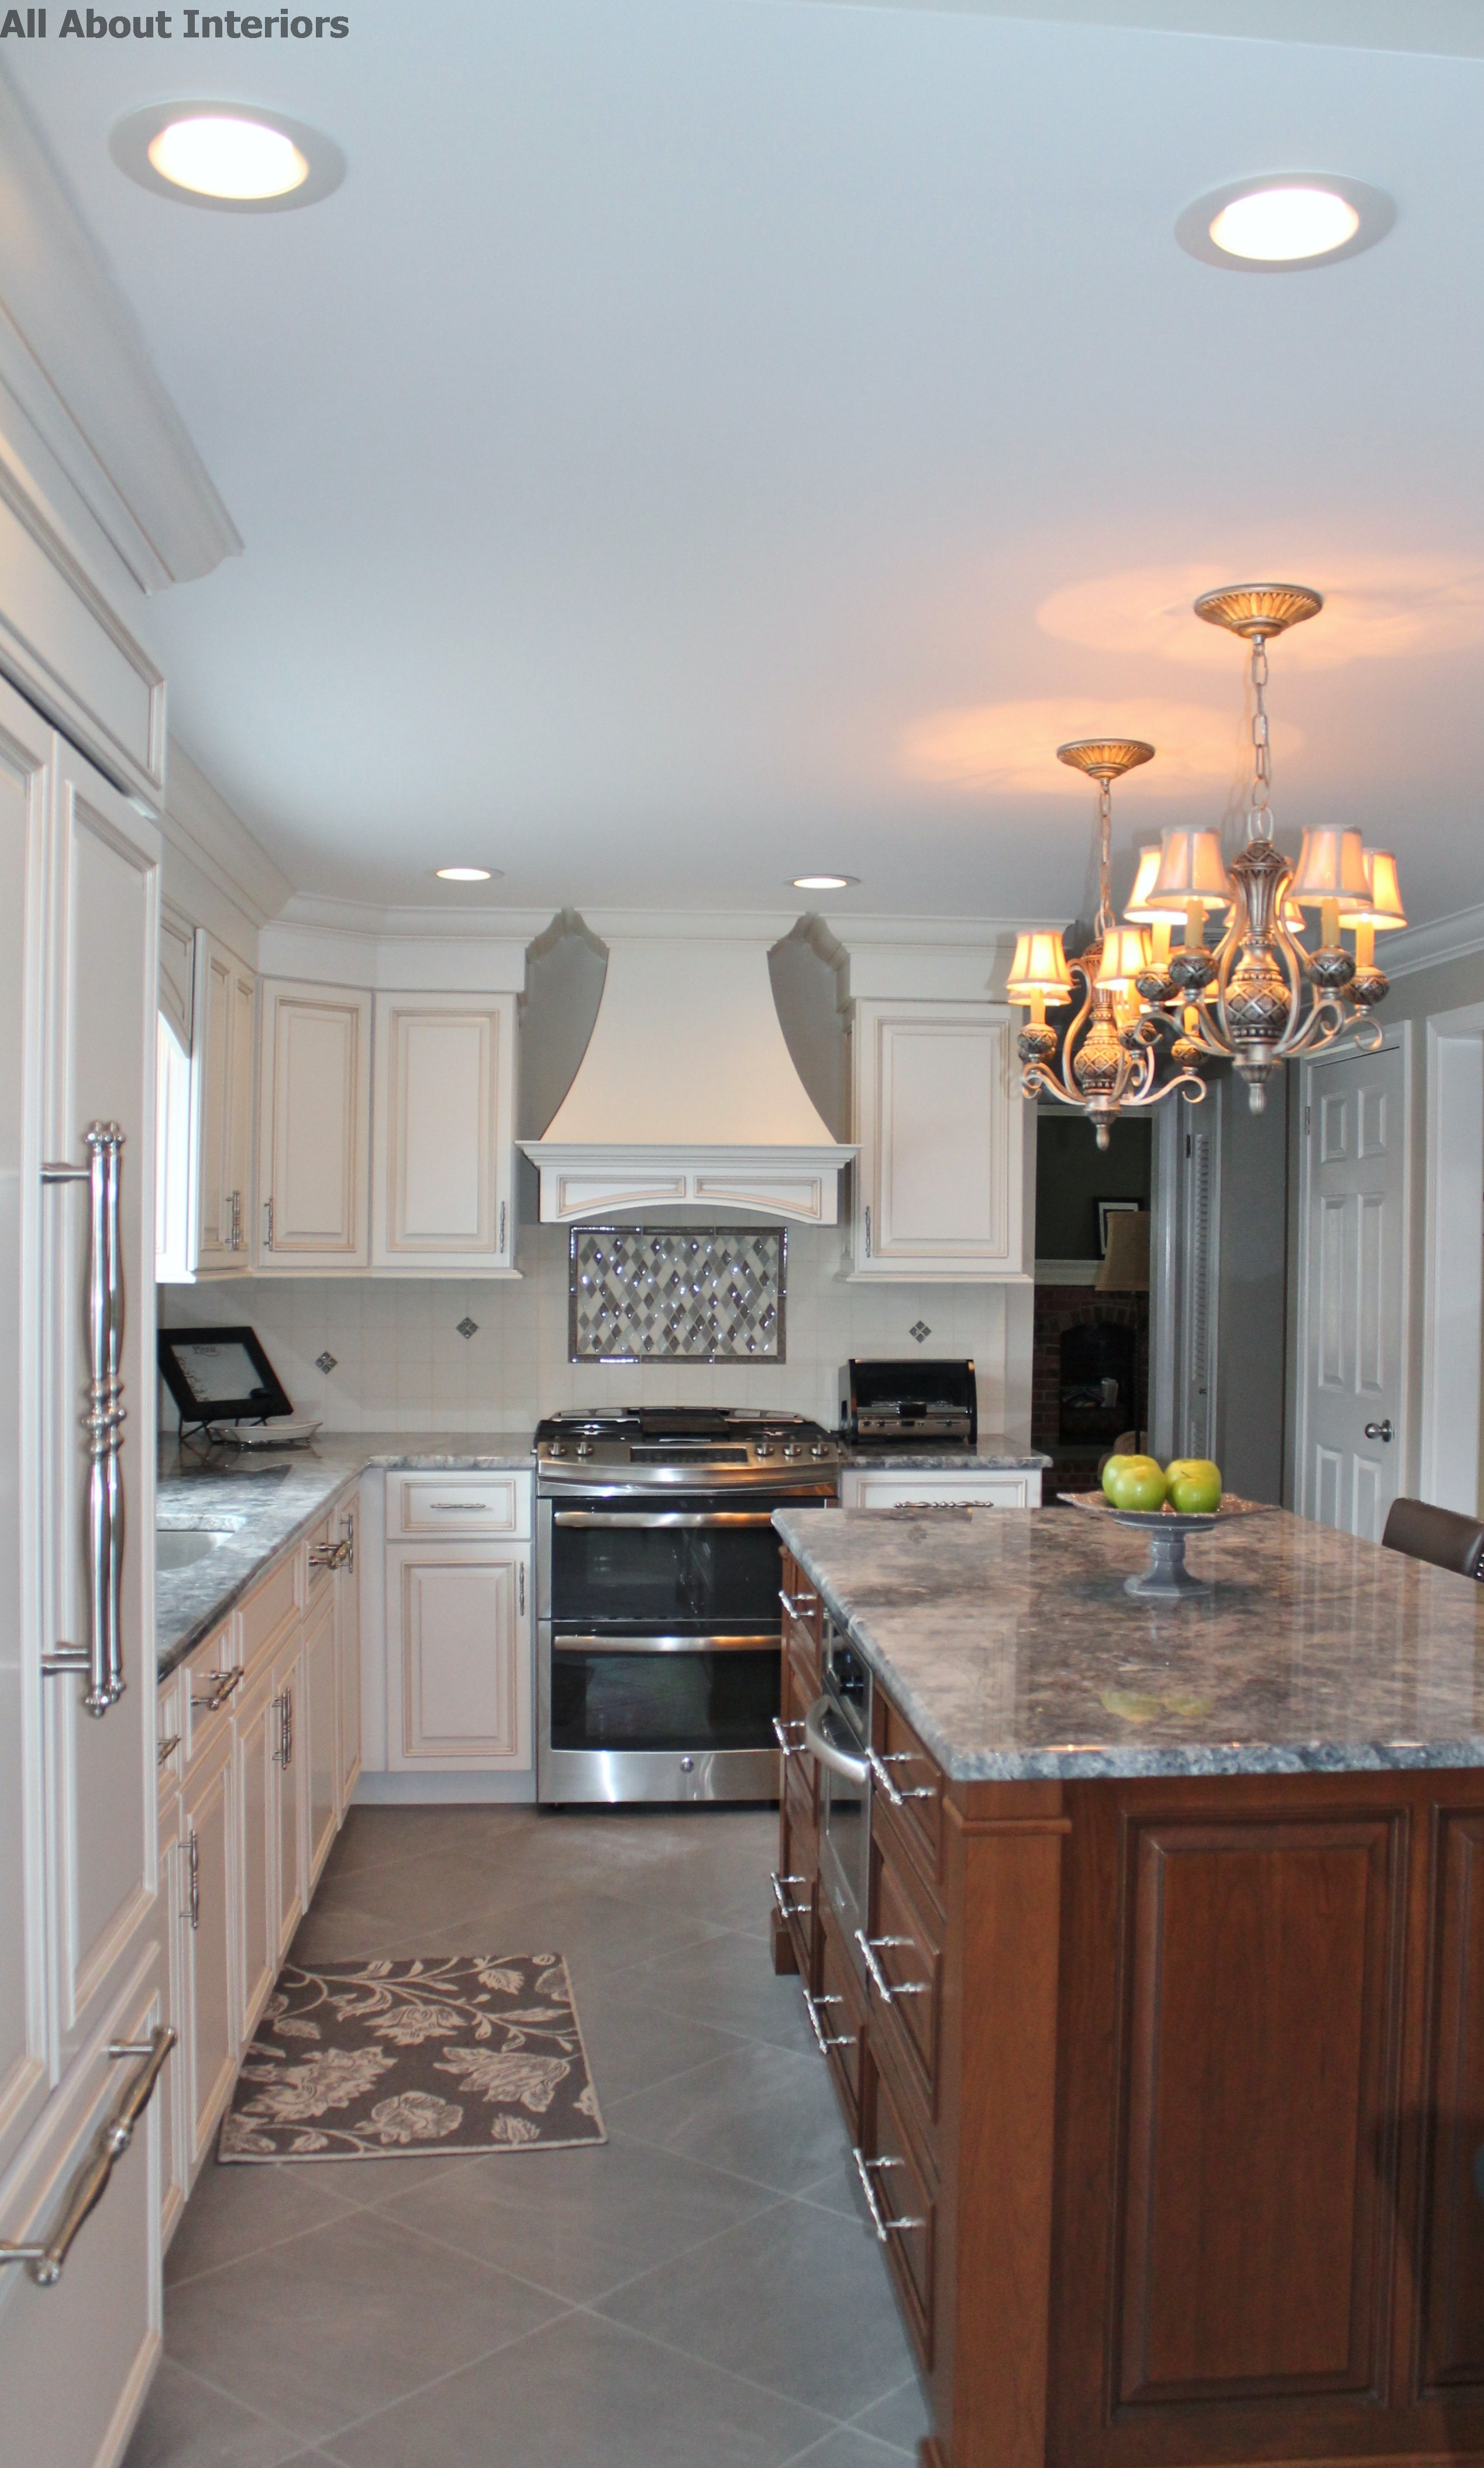 How Much Does It Cost To Remodel A Kitchen All About Interiors